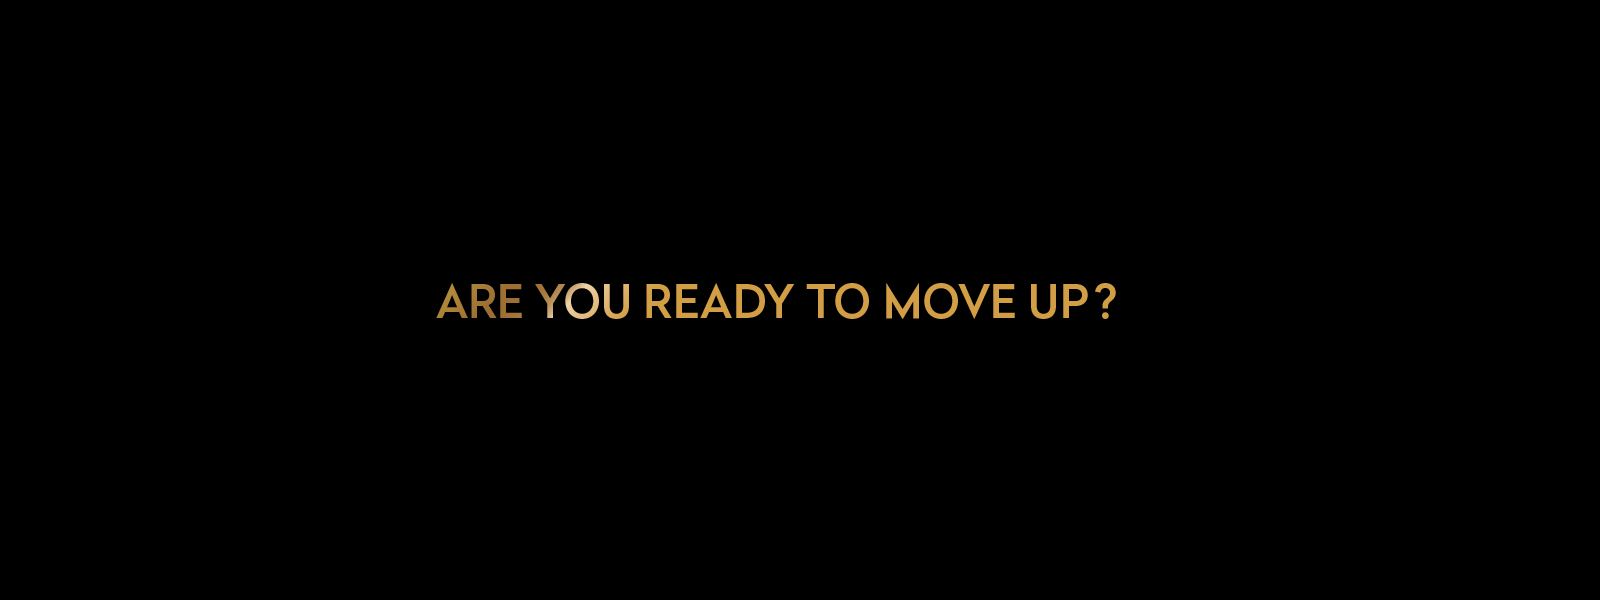 Are you ready to move up?